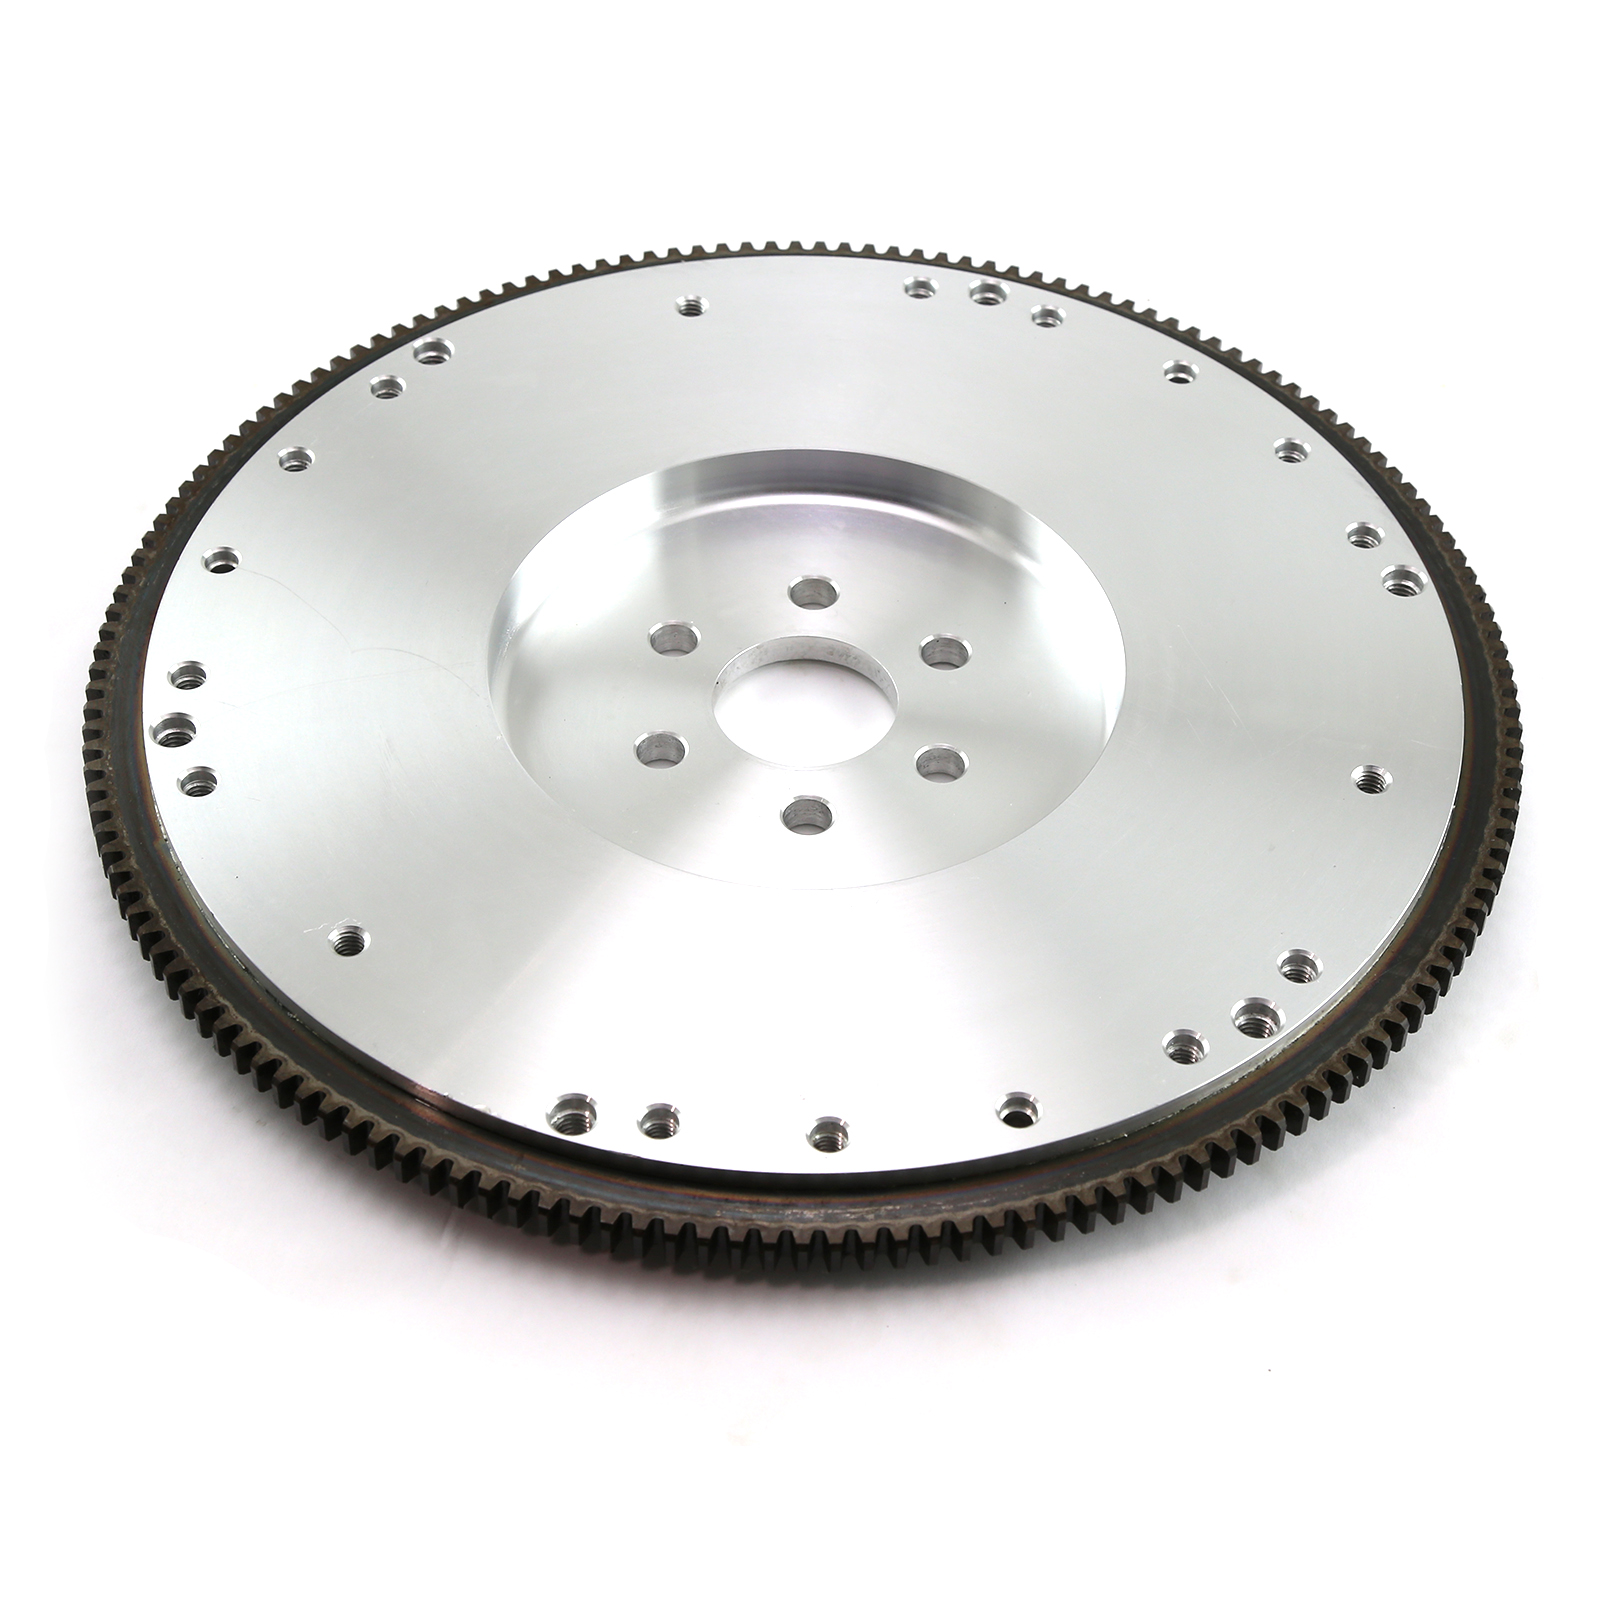 Ford SB 289 302 351 351C Windsor 157 Tooth Int. Bal Billet Aluminum Flywheel